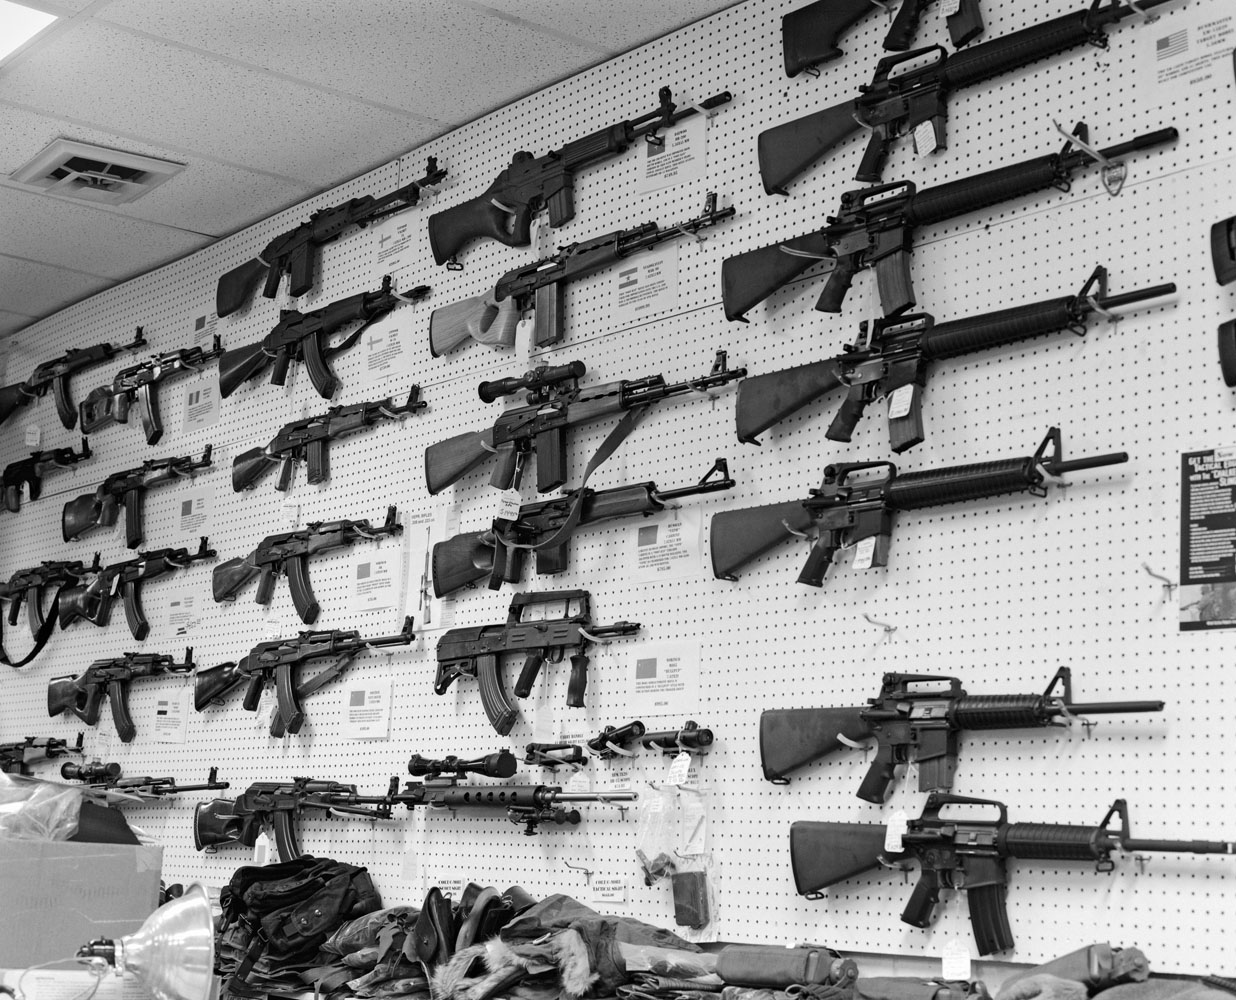 A Selection of high-velocity assault rifles on display in Paladin Arms gunstore in Longmont, Colo., shortly after the massacre at nearby Columbine High School. These are available over-the-counter to anyone over the age of 18, under Colorado State law.